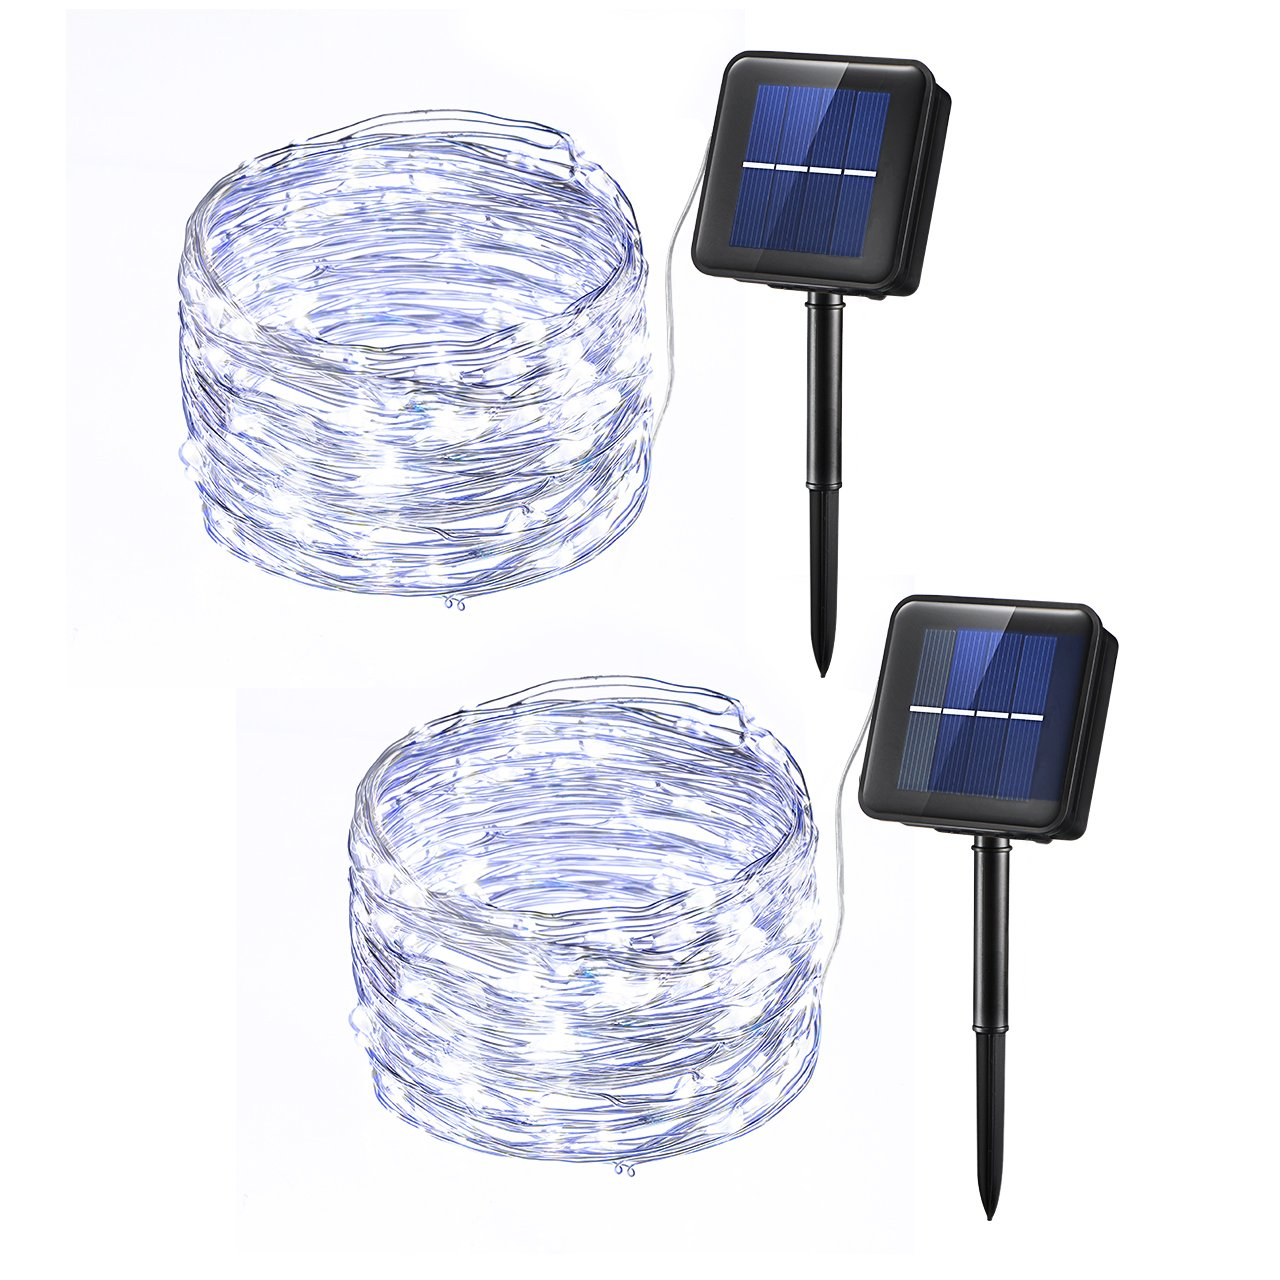 Mpow Solar String Lights, 33ft 100LED Outdoor String Lights, Waterproof Decorative String Lights for Patio, Garden, Gate, Yard, Party, Wedding (Cool White)